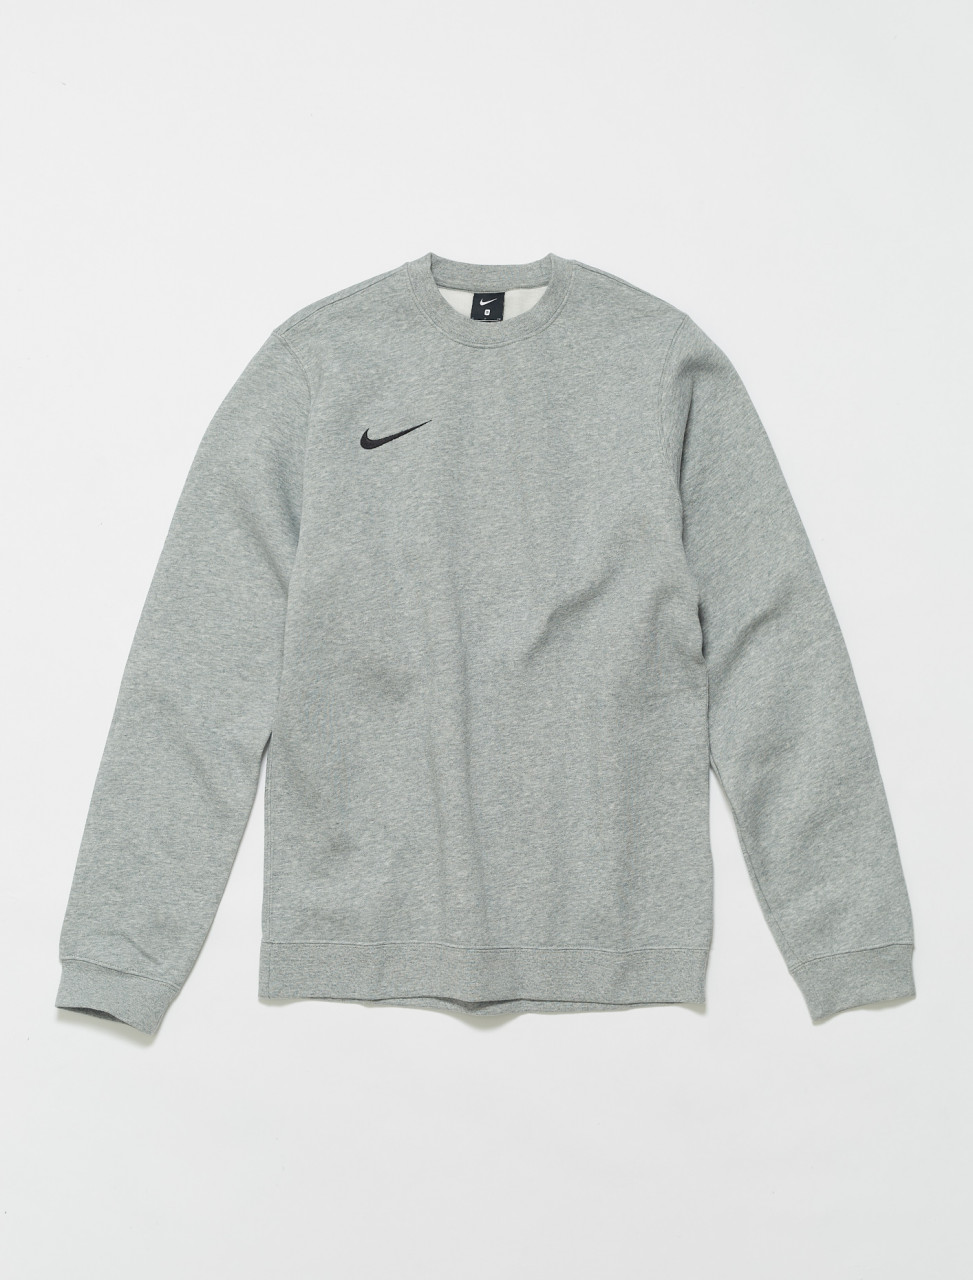 149-AJ1466-063 NIKE MENS CREWNECK SWEATSHIRT DARK GREY